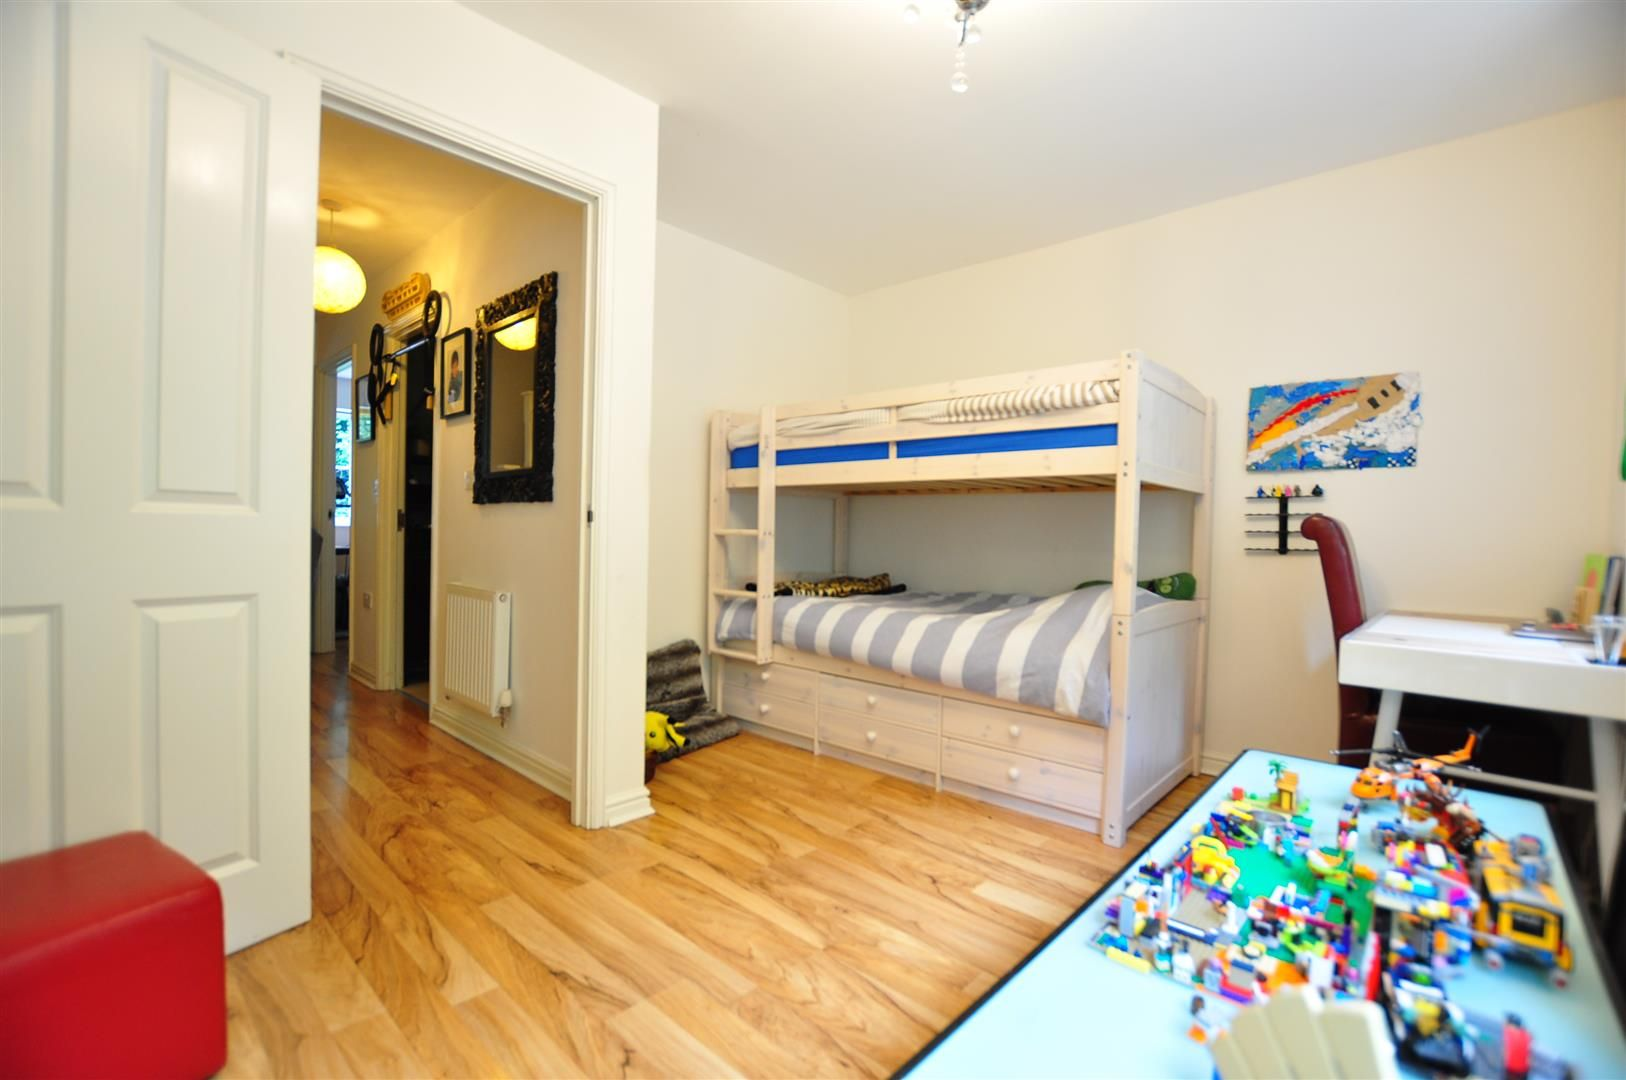 4 bed end-of-terrace for sale 11